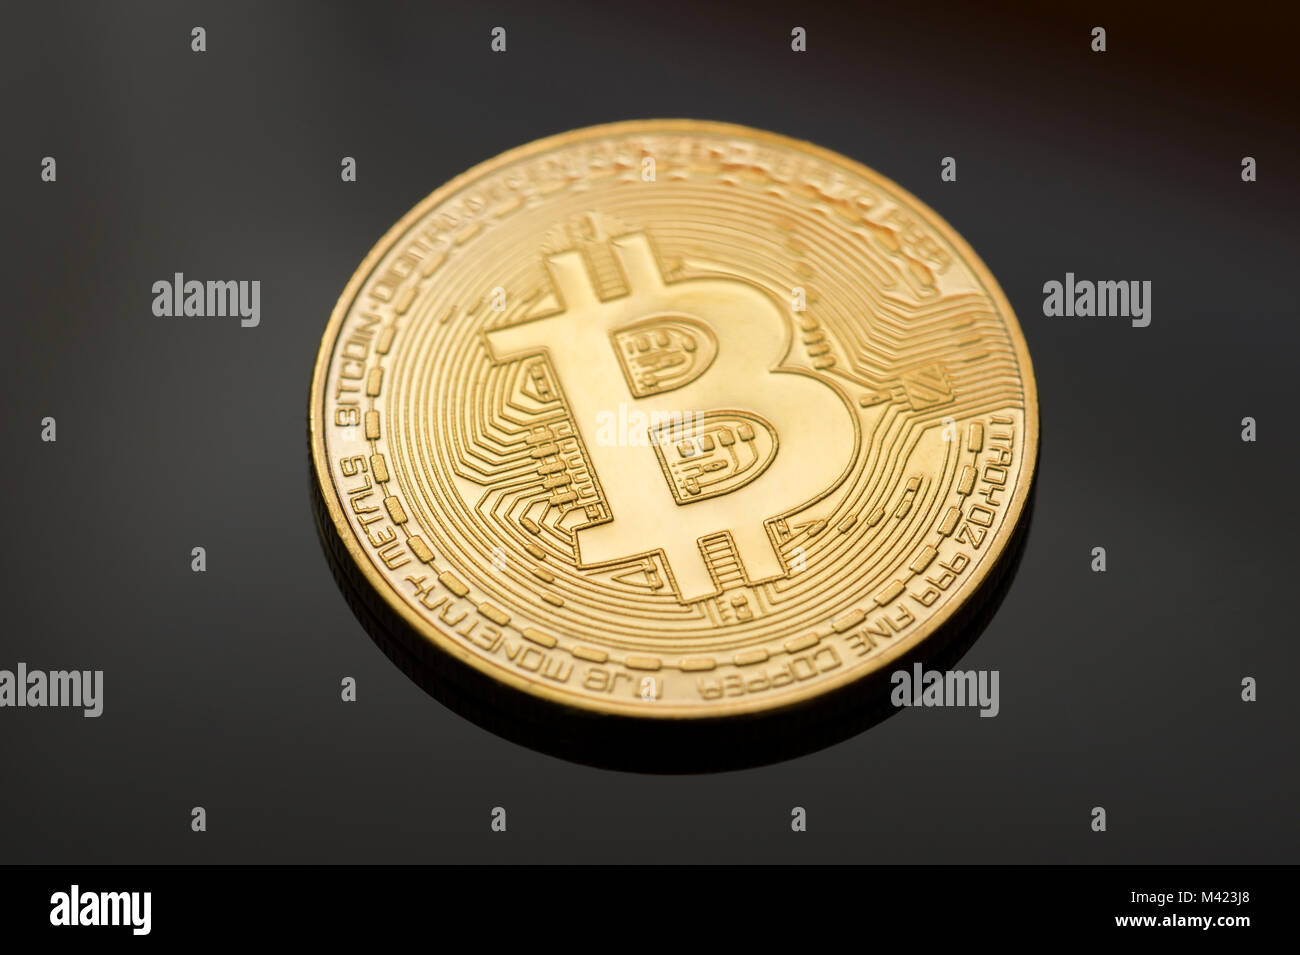 A single Gold Bitcoin on a black background. One of many digital or cryptocurrencies that use blockchain technology - Stock Image